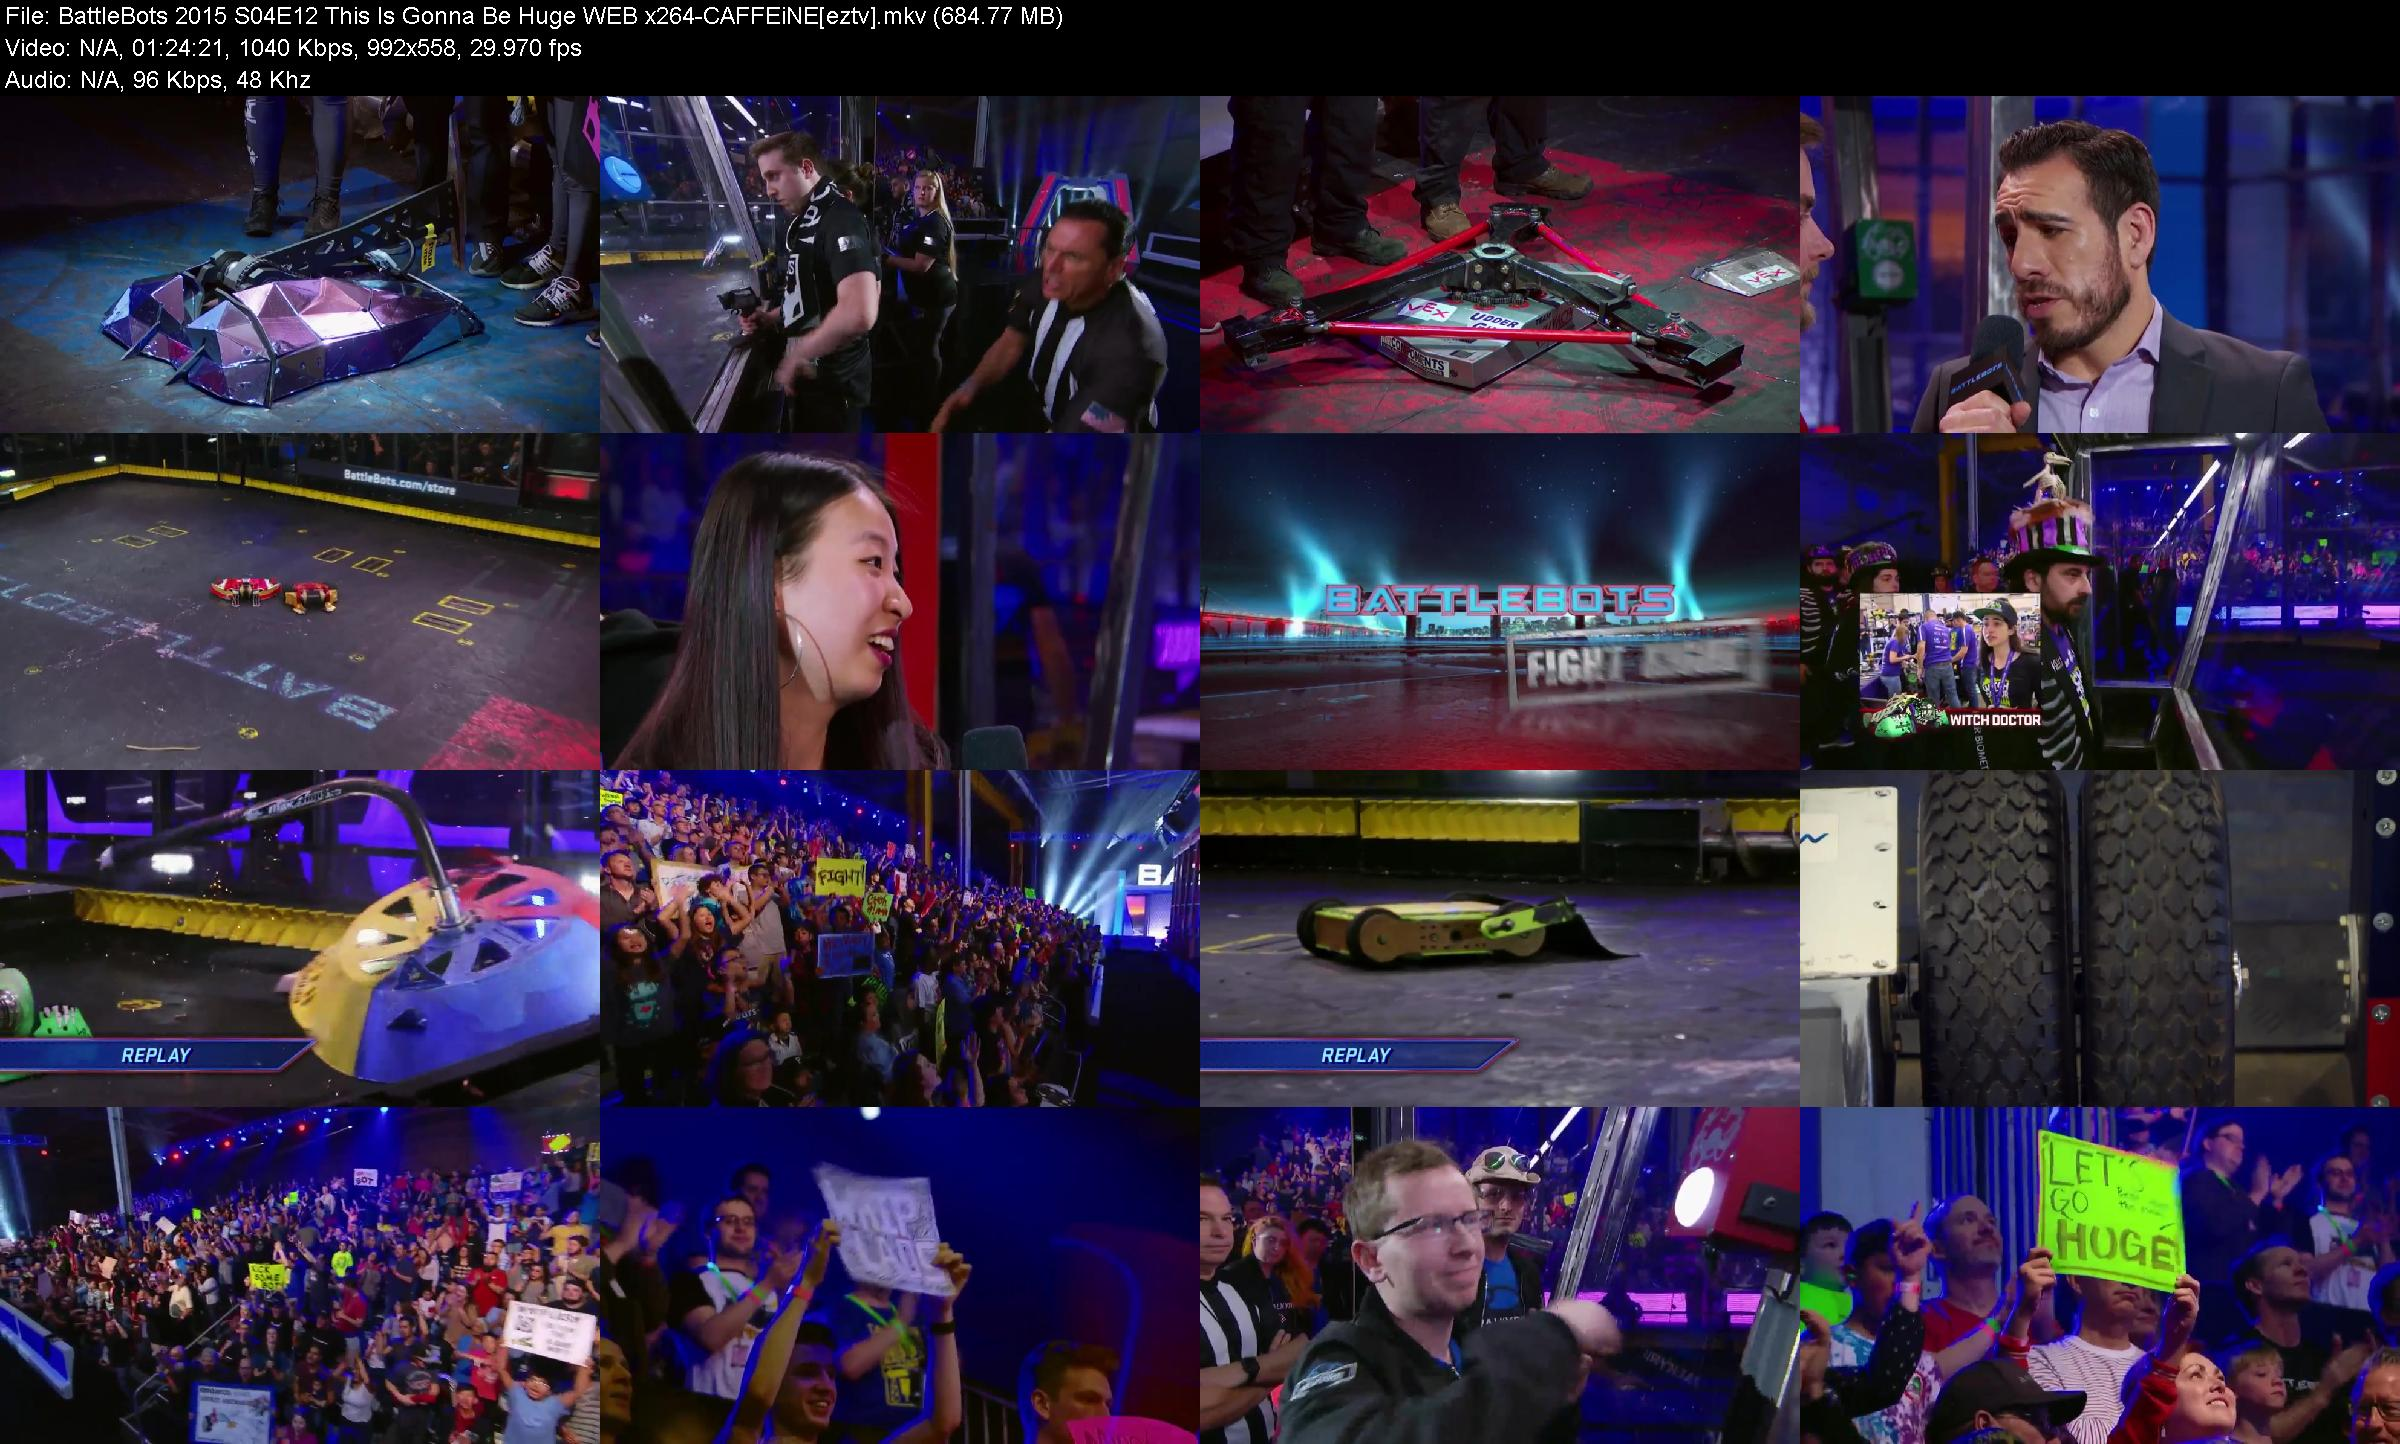 BattleBots 2015 S04E12 This Is Gonna Be Huge WEB x264-CAFFEiNE